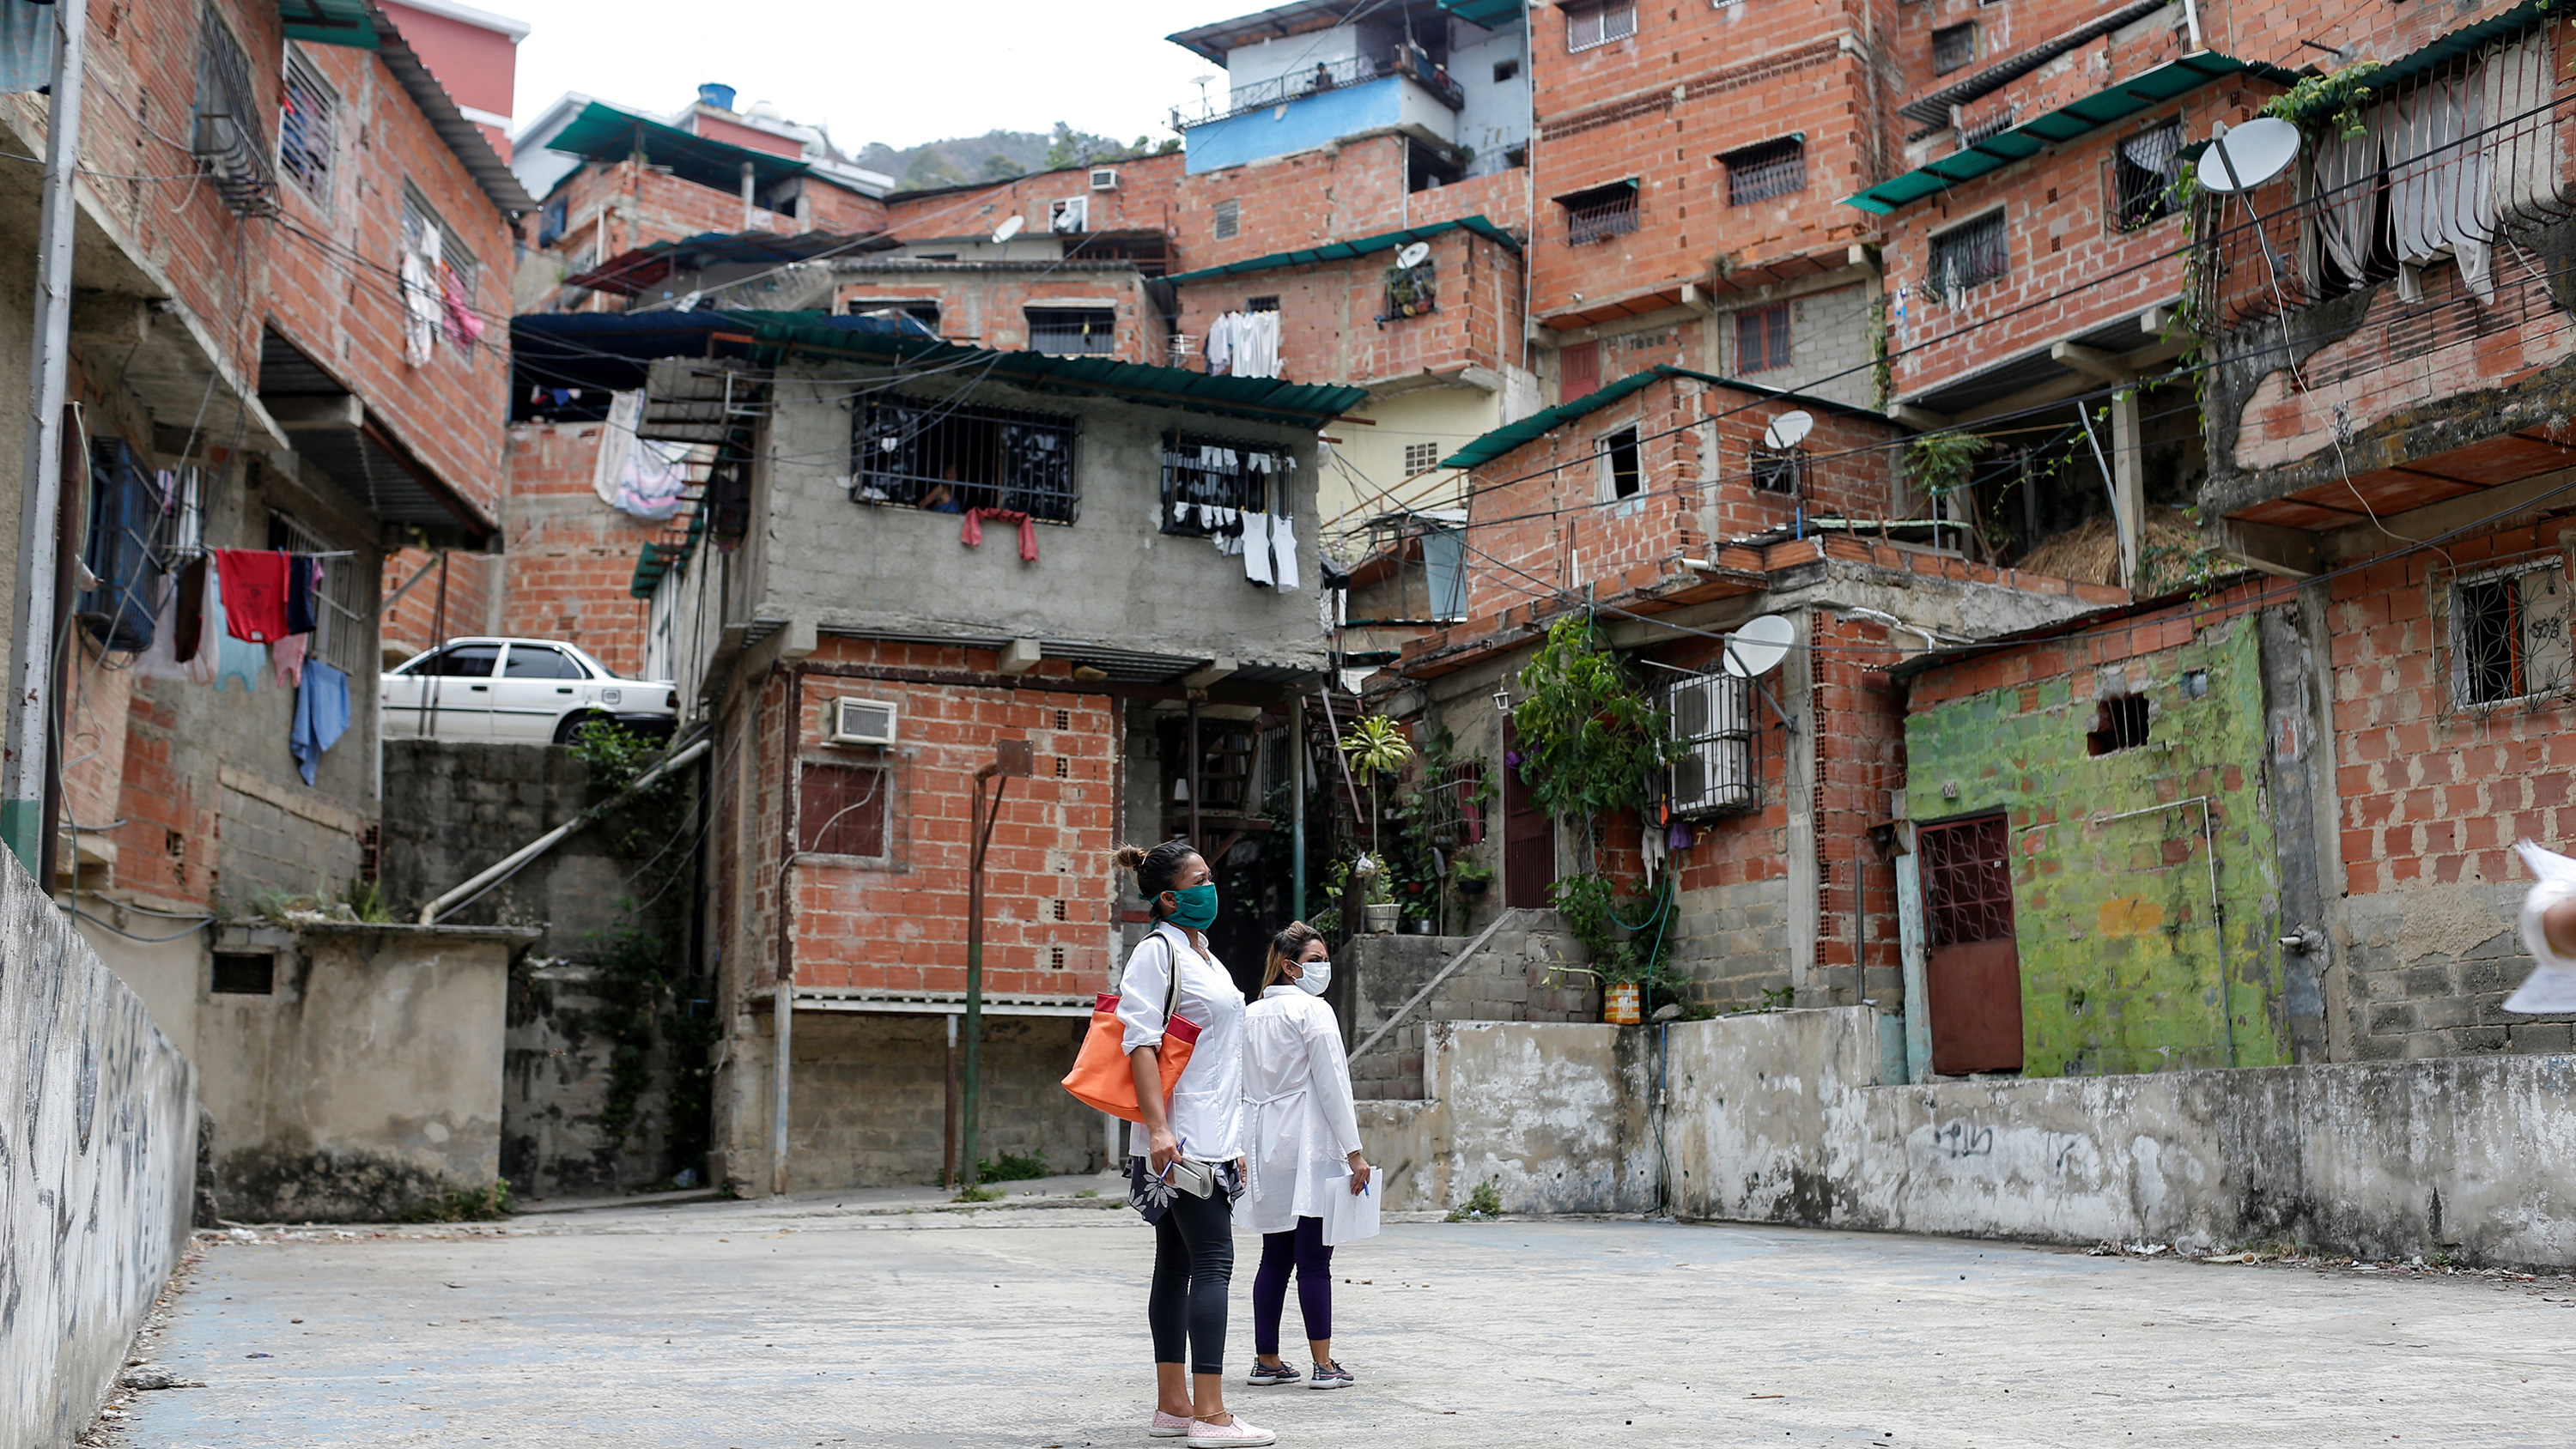 Picture shows two people standing before a huge neighborhood of towering ramshackle structures.